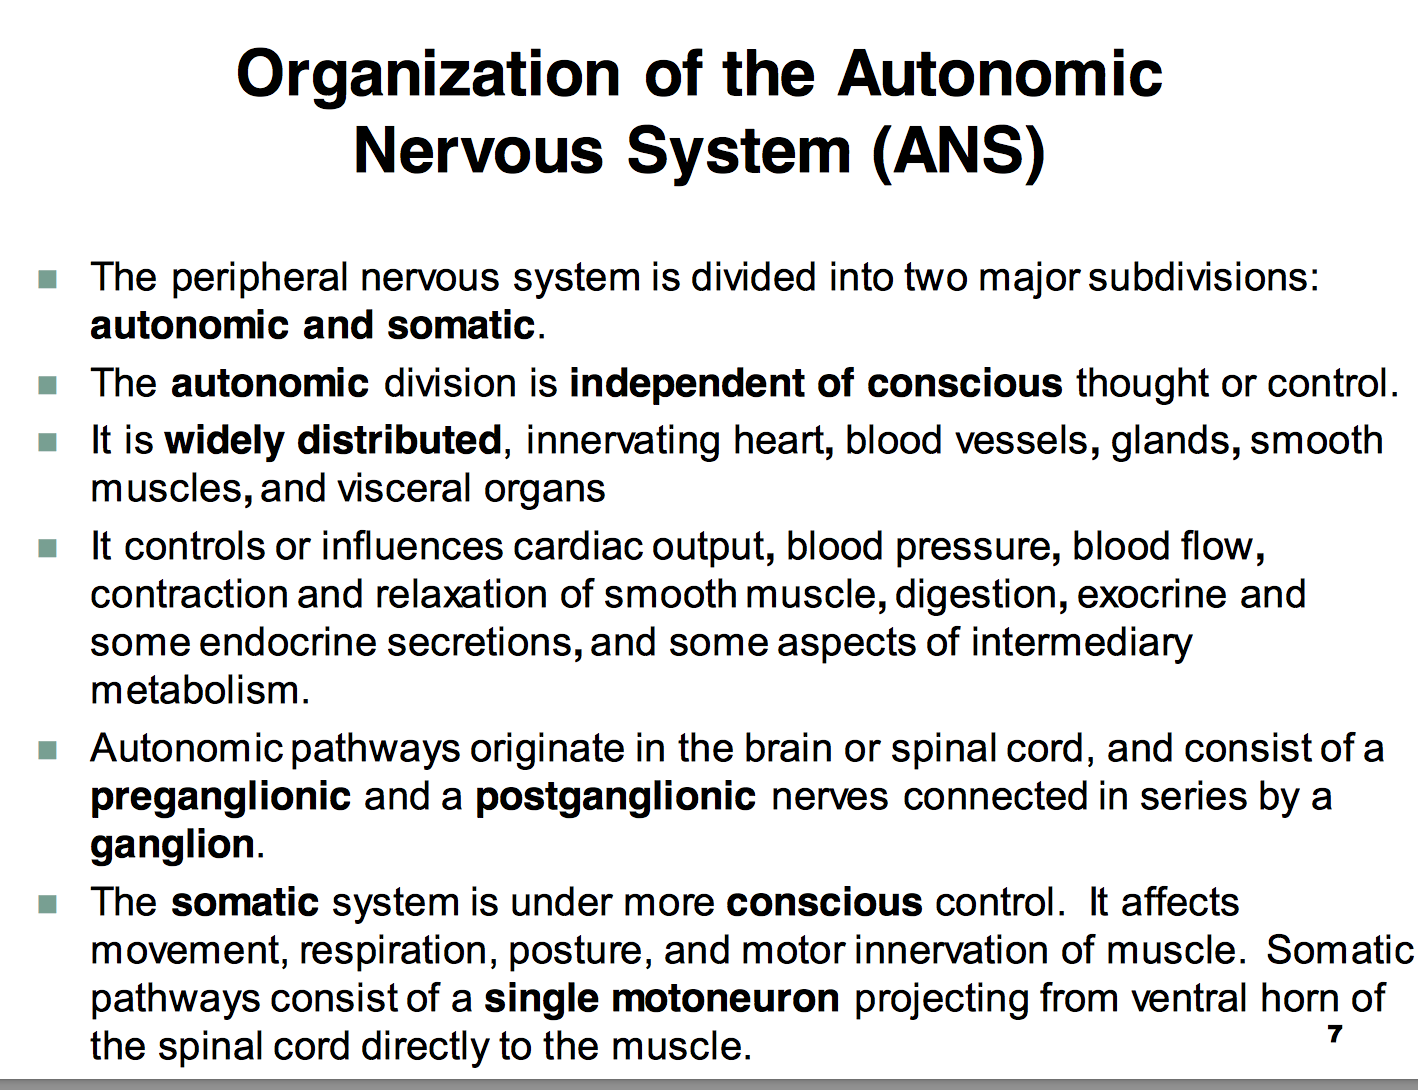 Ccf l11 autonomic nervous system physiology unit 1 flashcards it controls or influences cardiac output blood pressure blood flow contraction and relaxation nvjuhfo Gallery